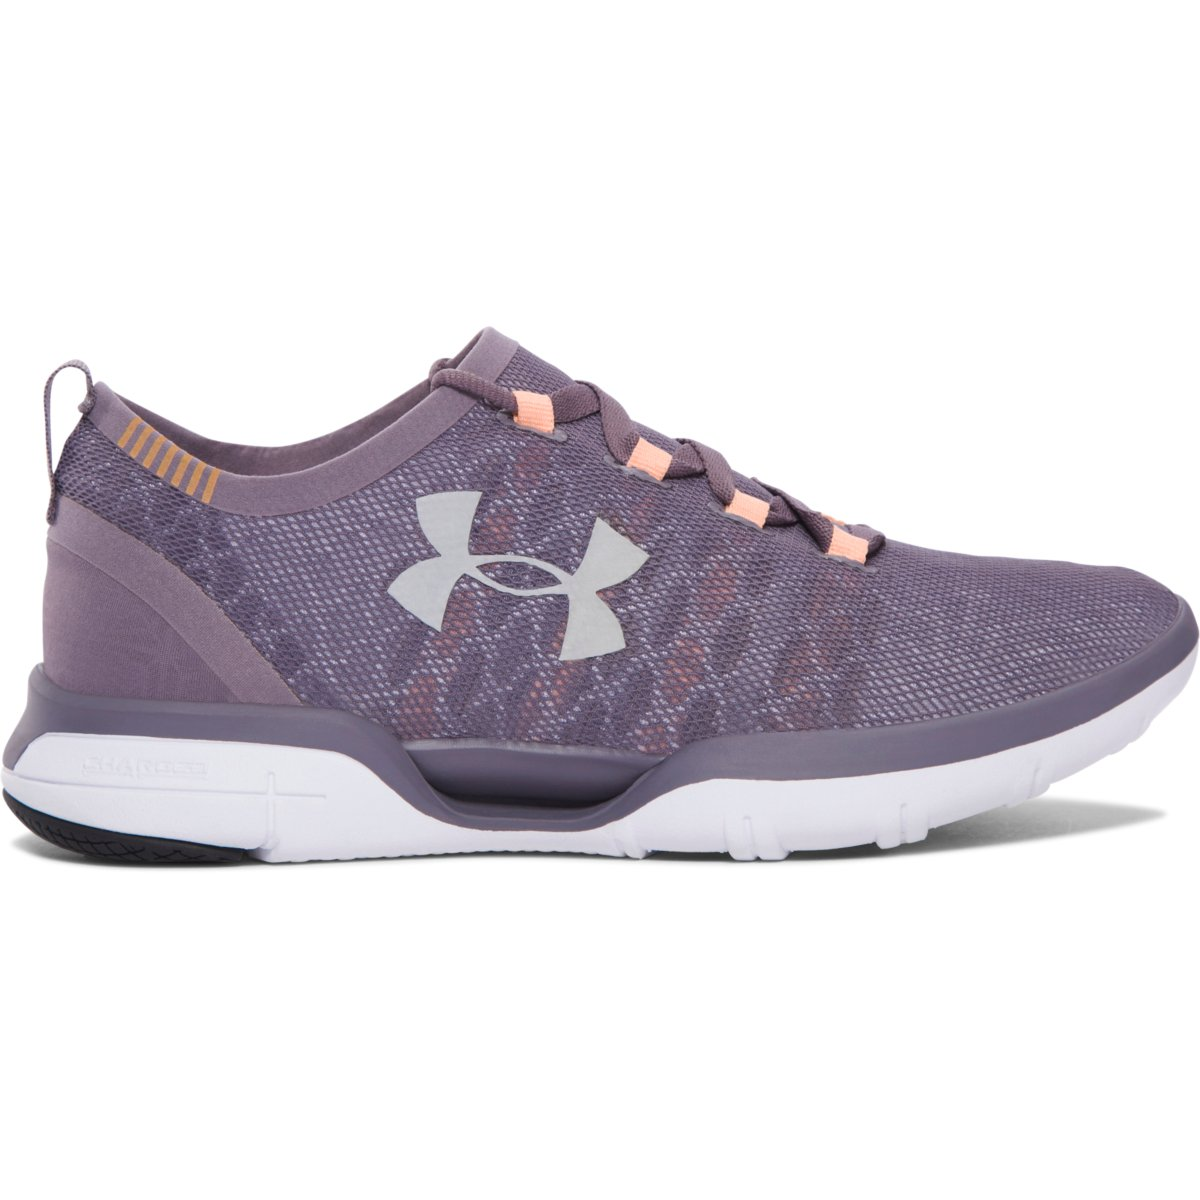 11b4a9933 Details about Women s Under Armour Charged Coolswitch Run Running Shoe